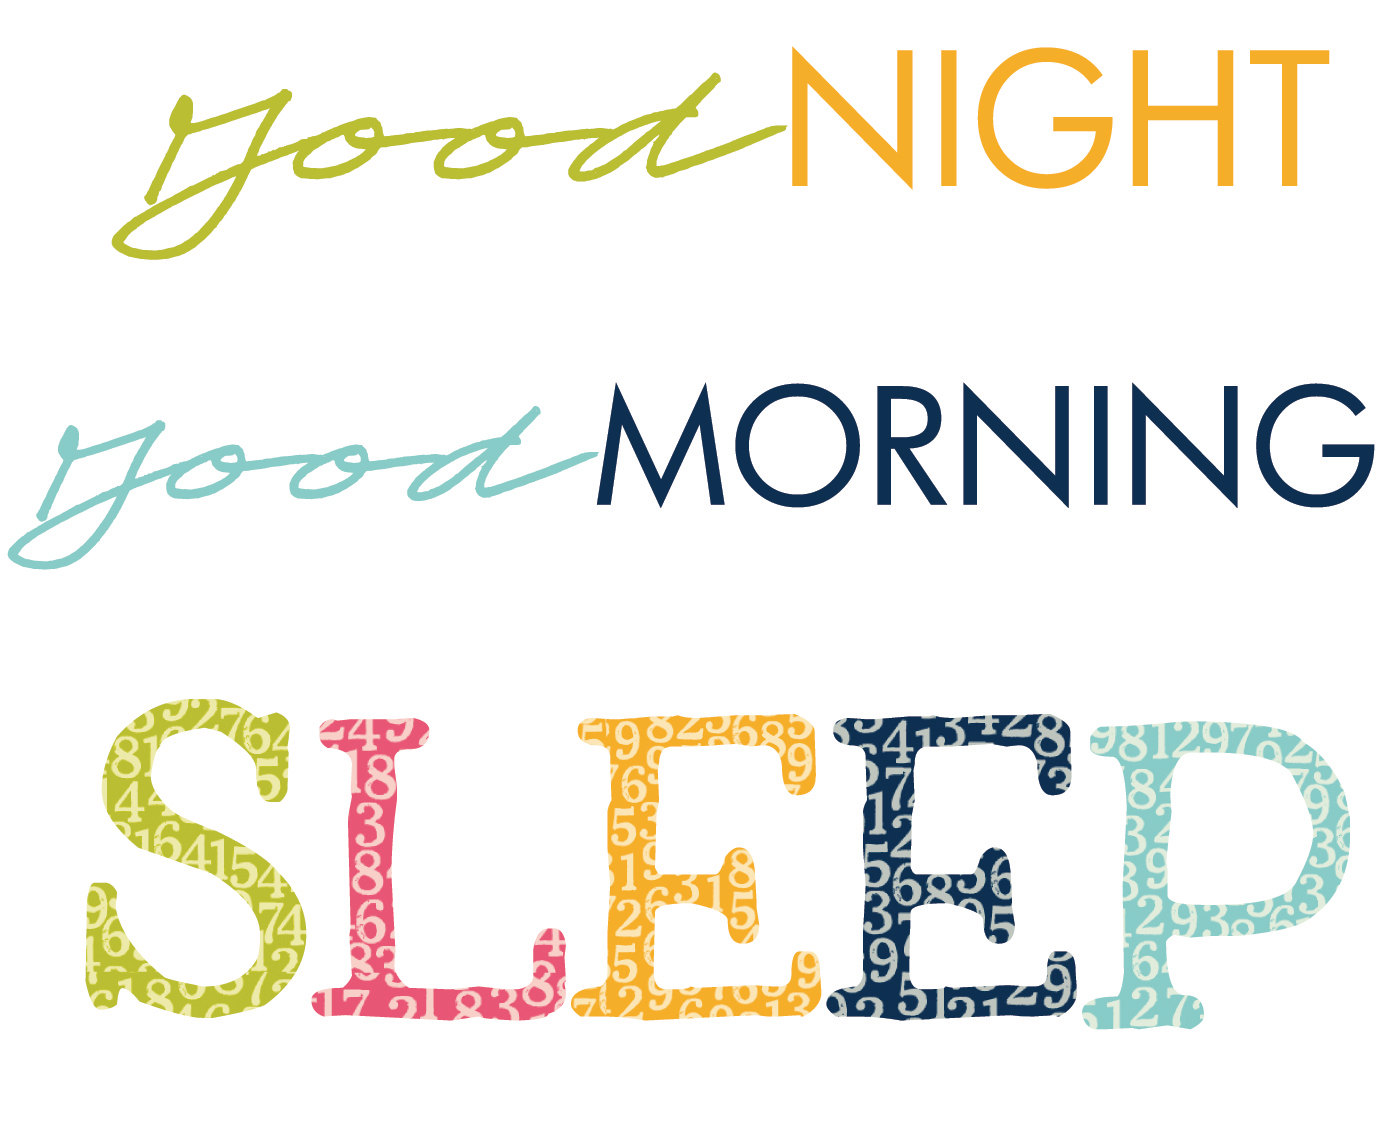 Good morning good afternoon good evening clipart picture black and white stock Good morning good night clipart - ClipartFox picture black and white stock